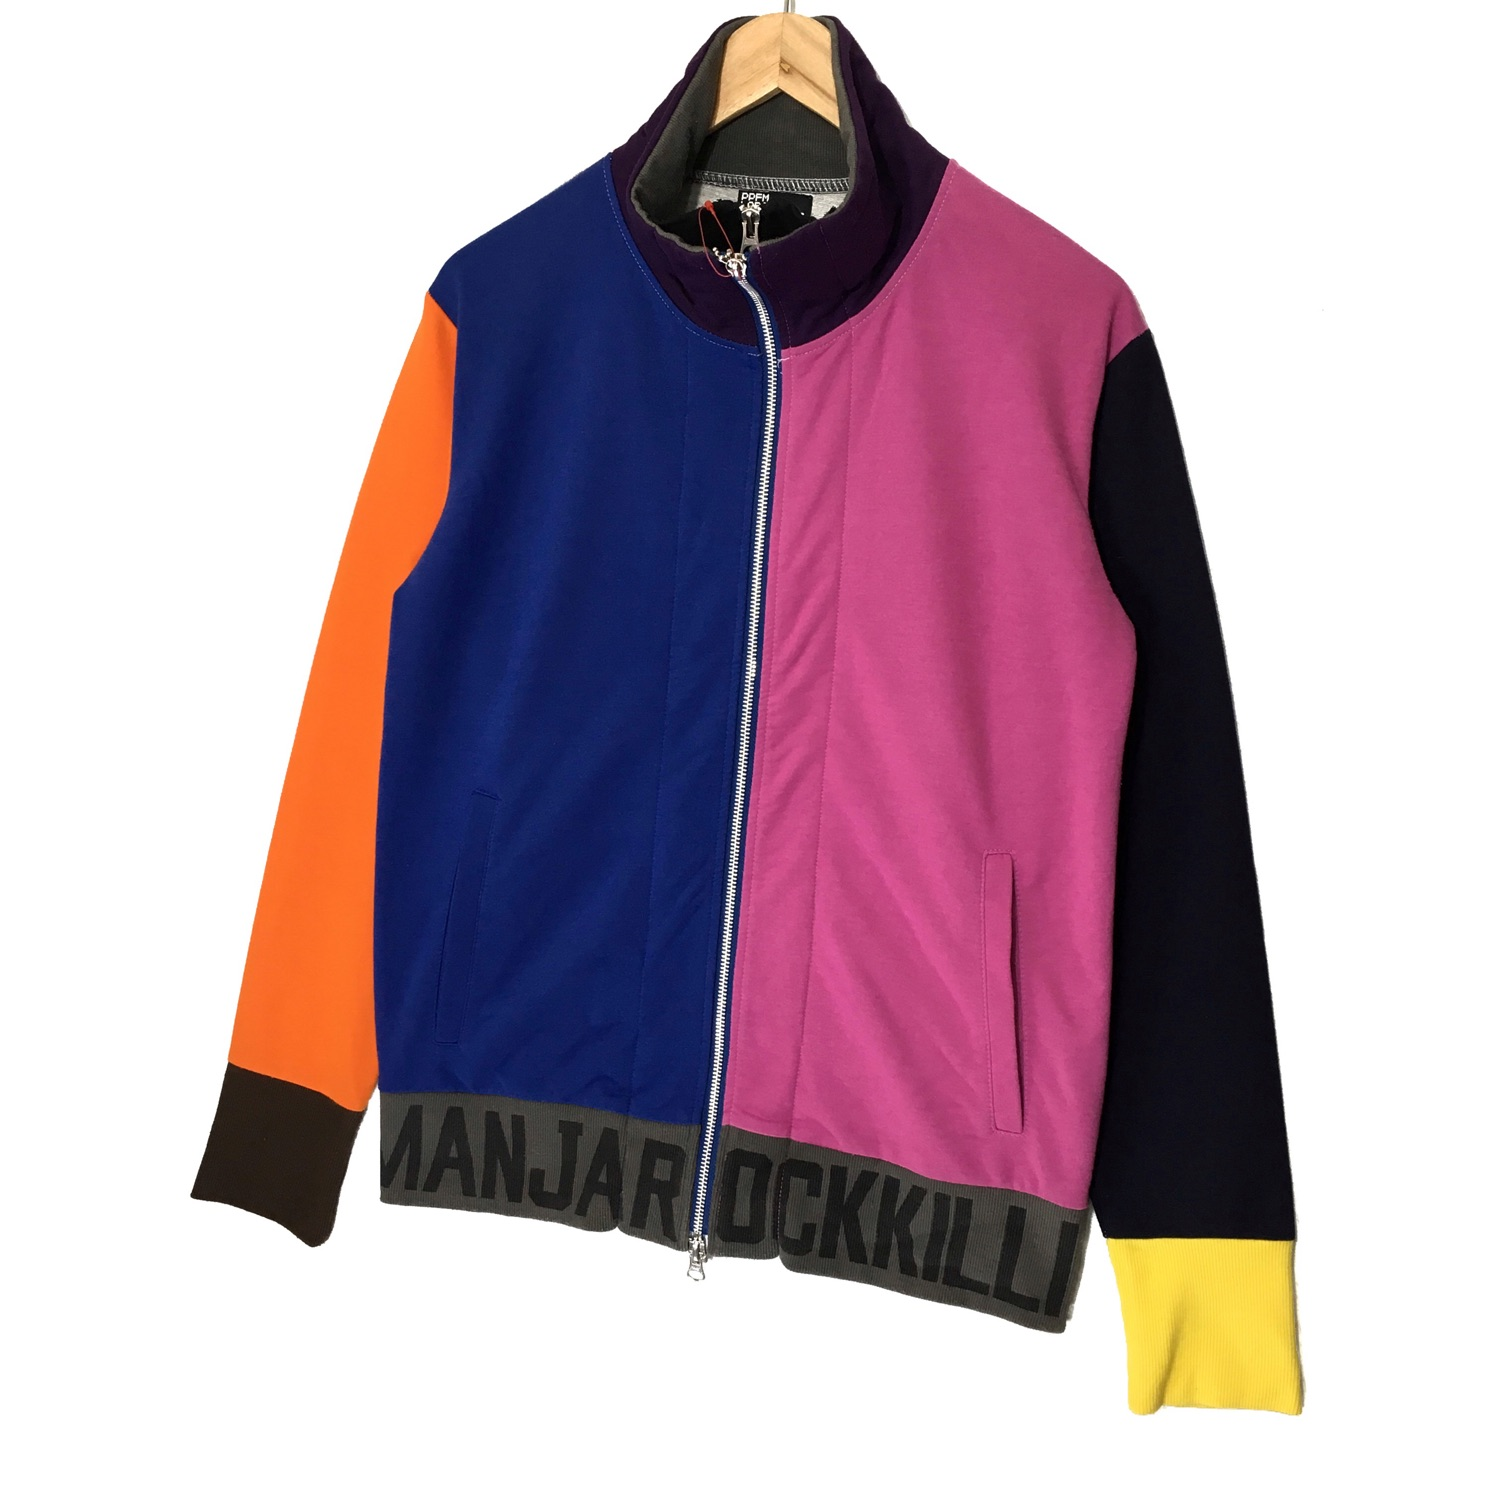 d8ee799e2805 Vintage Adidas Sport Track Jacket From The 90 S